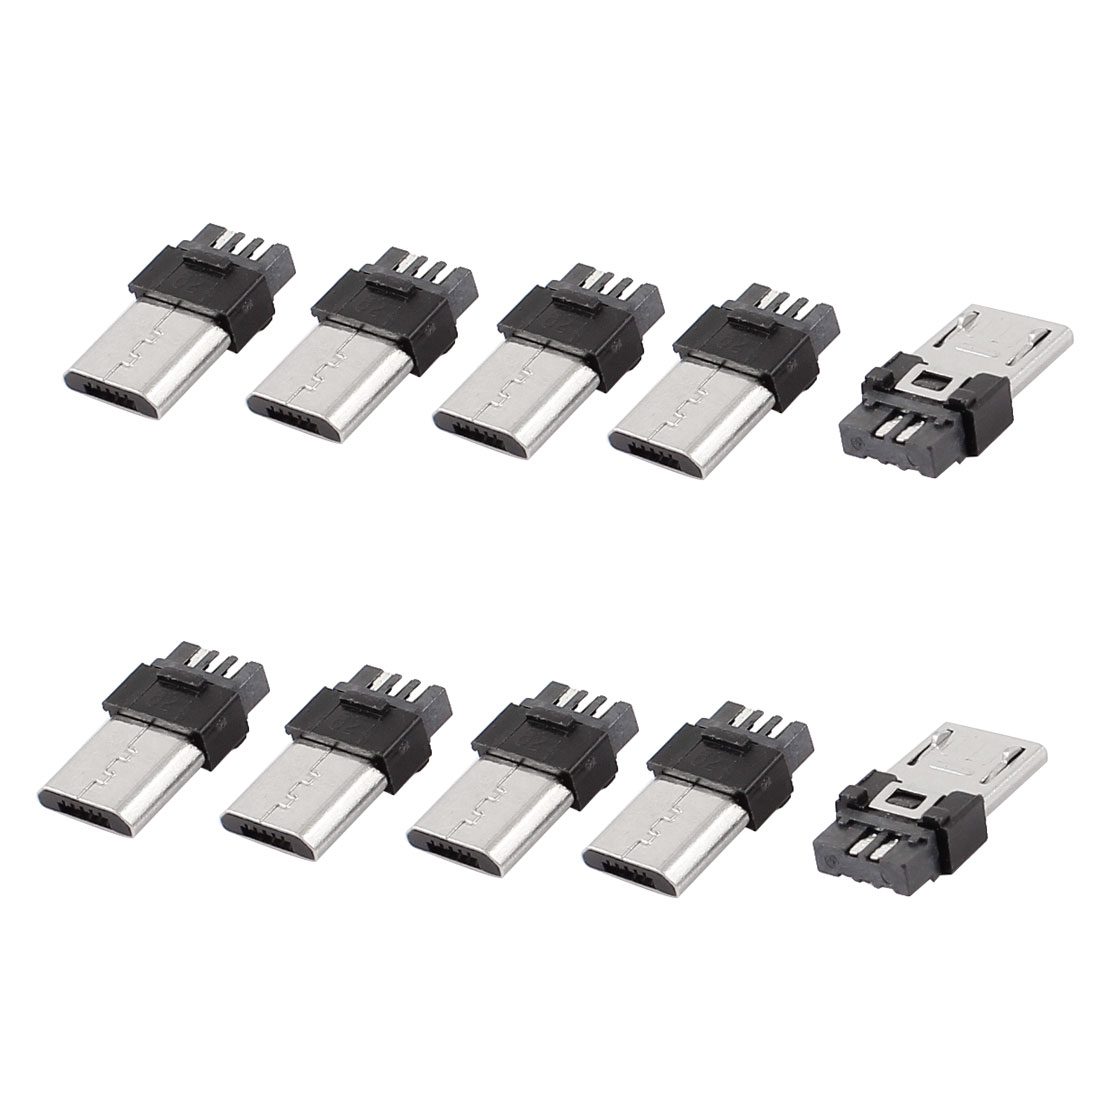 10 Pieces Micro USB B Type 5 Pin Male Solder Jack Connector Sockets